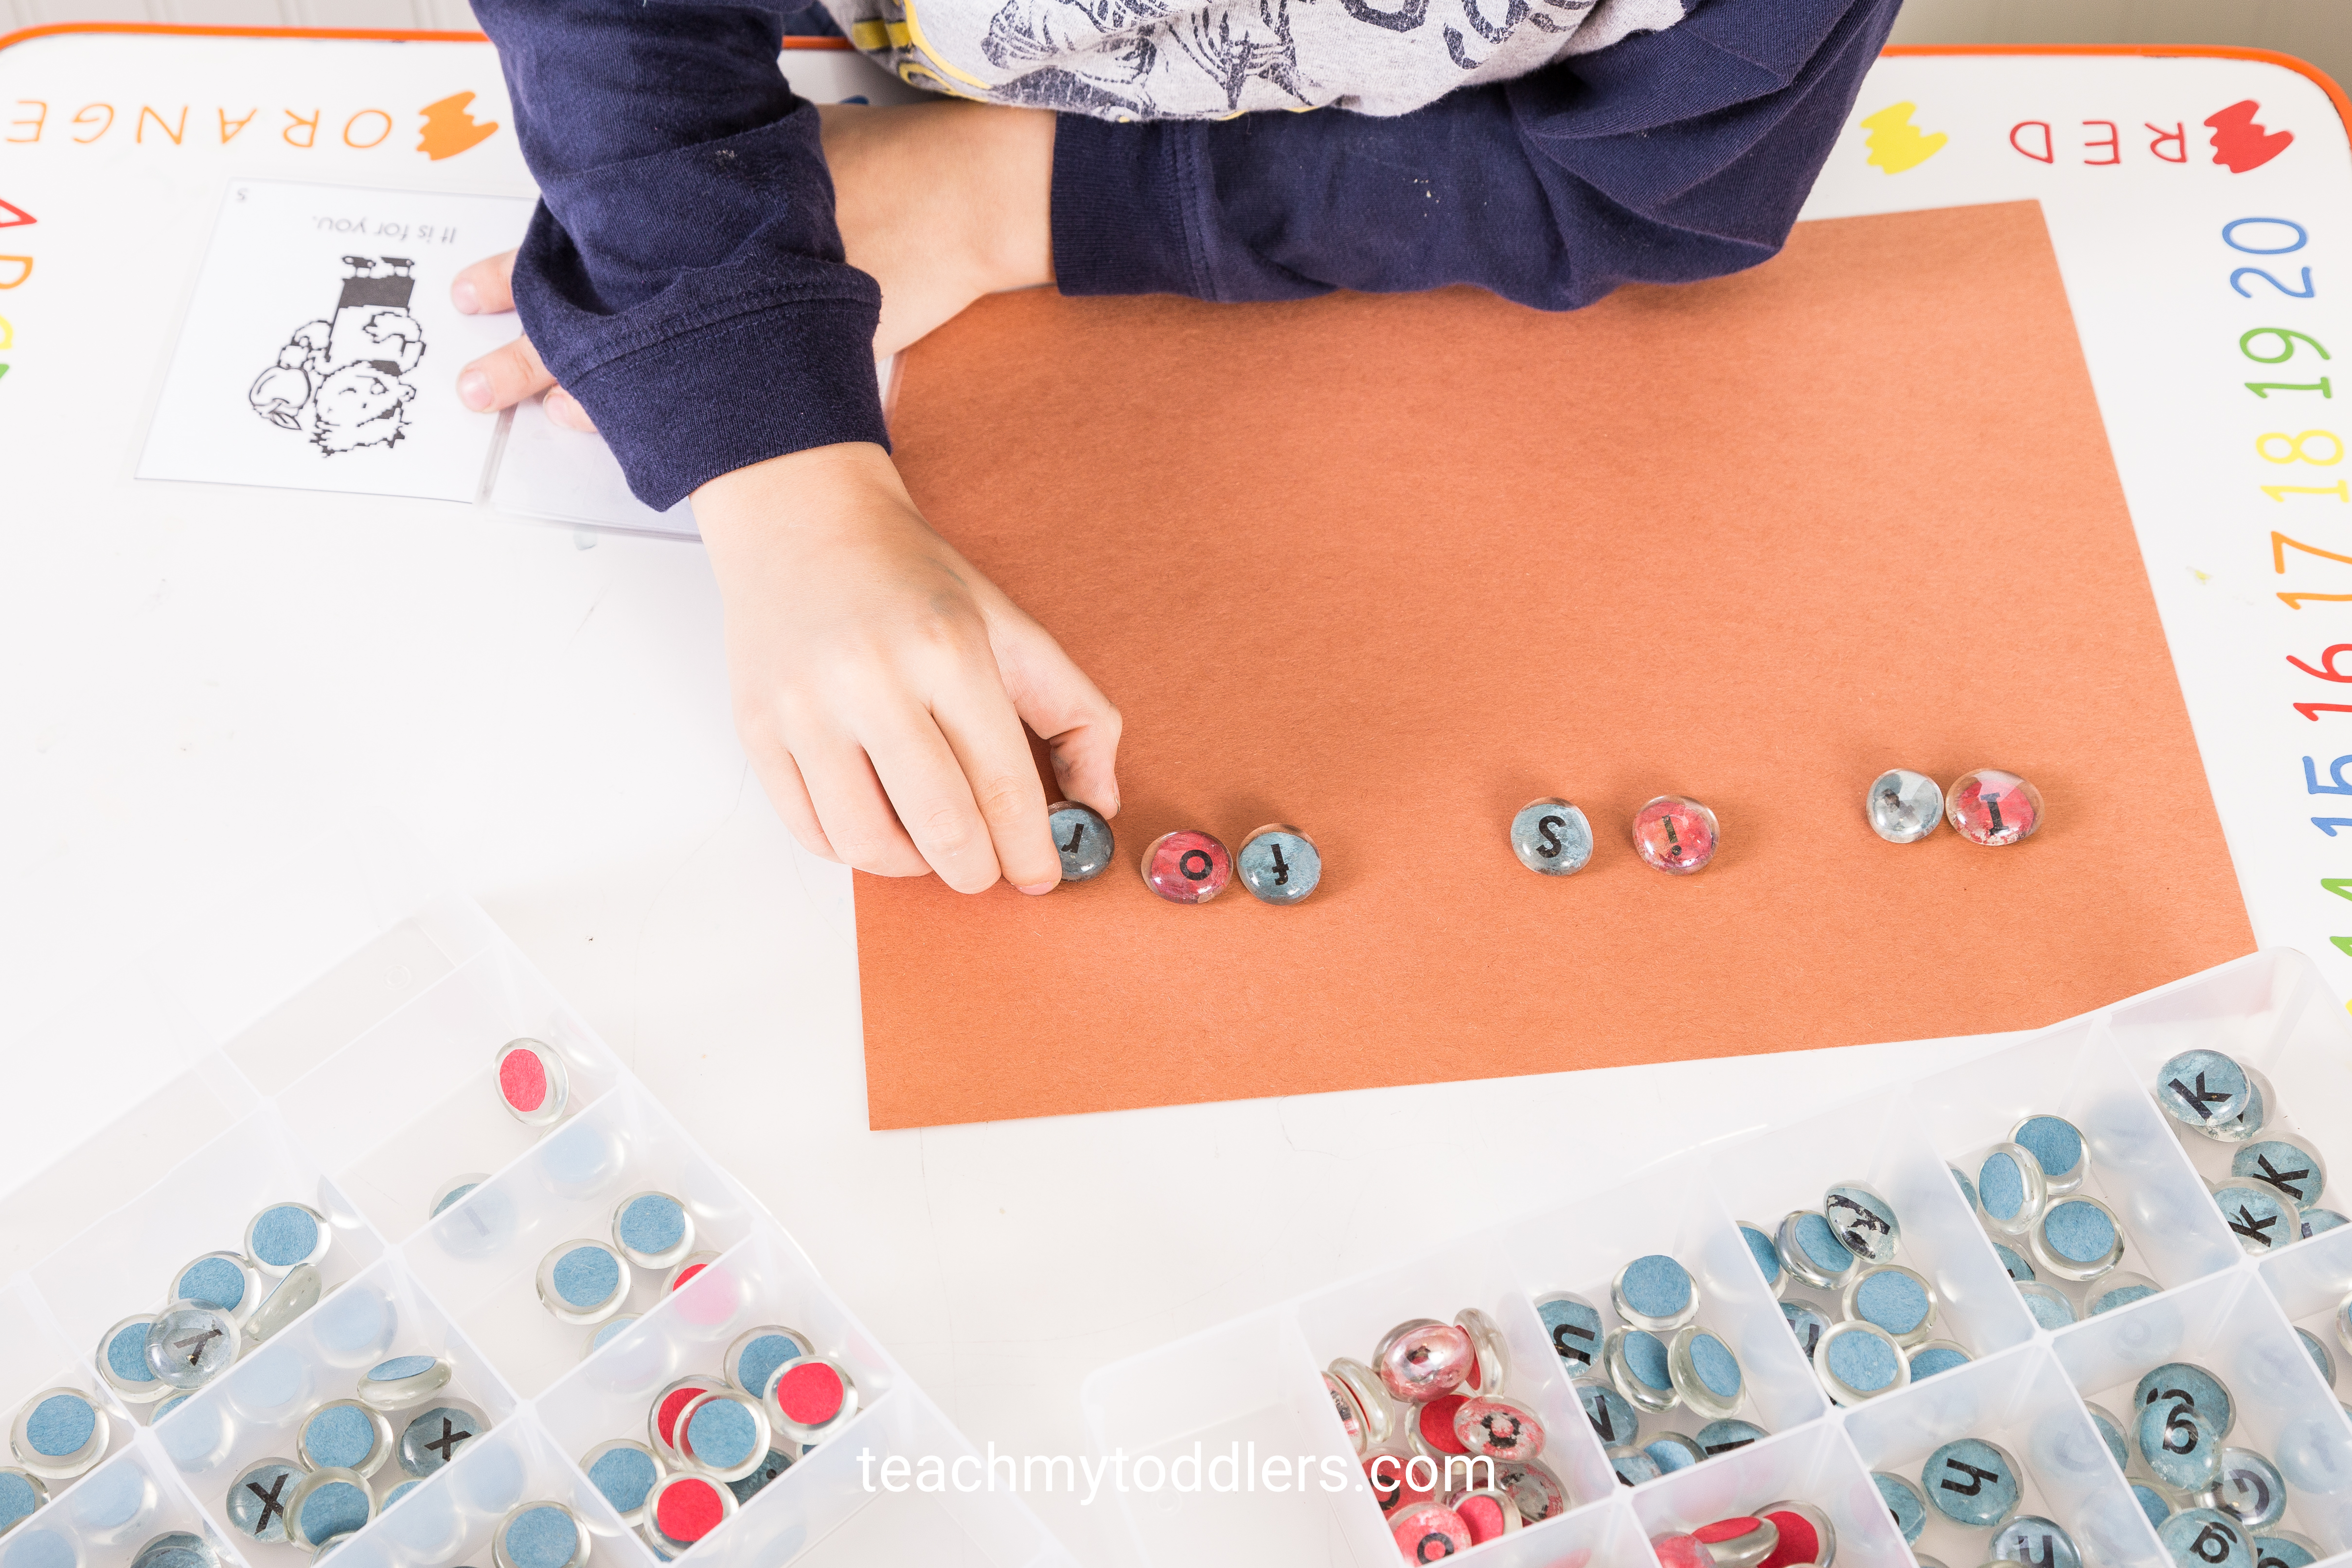 Learn how to use this diy montessori alphabet game to teach toddlers letters